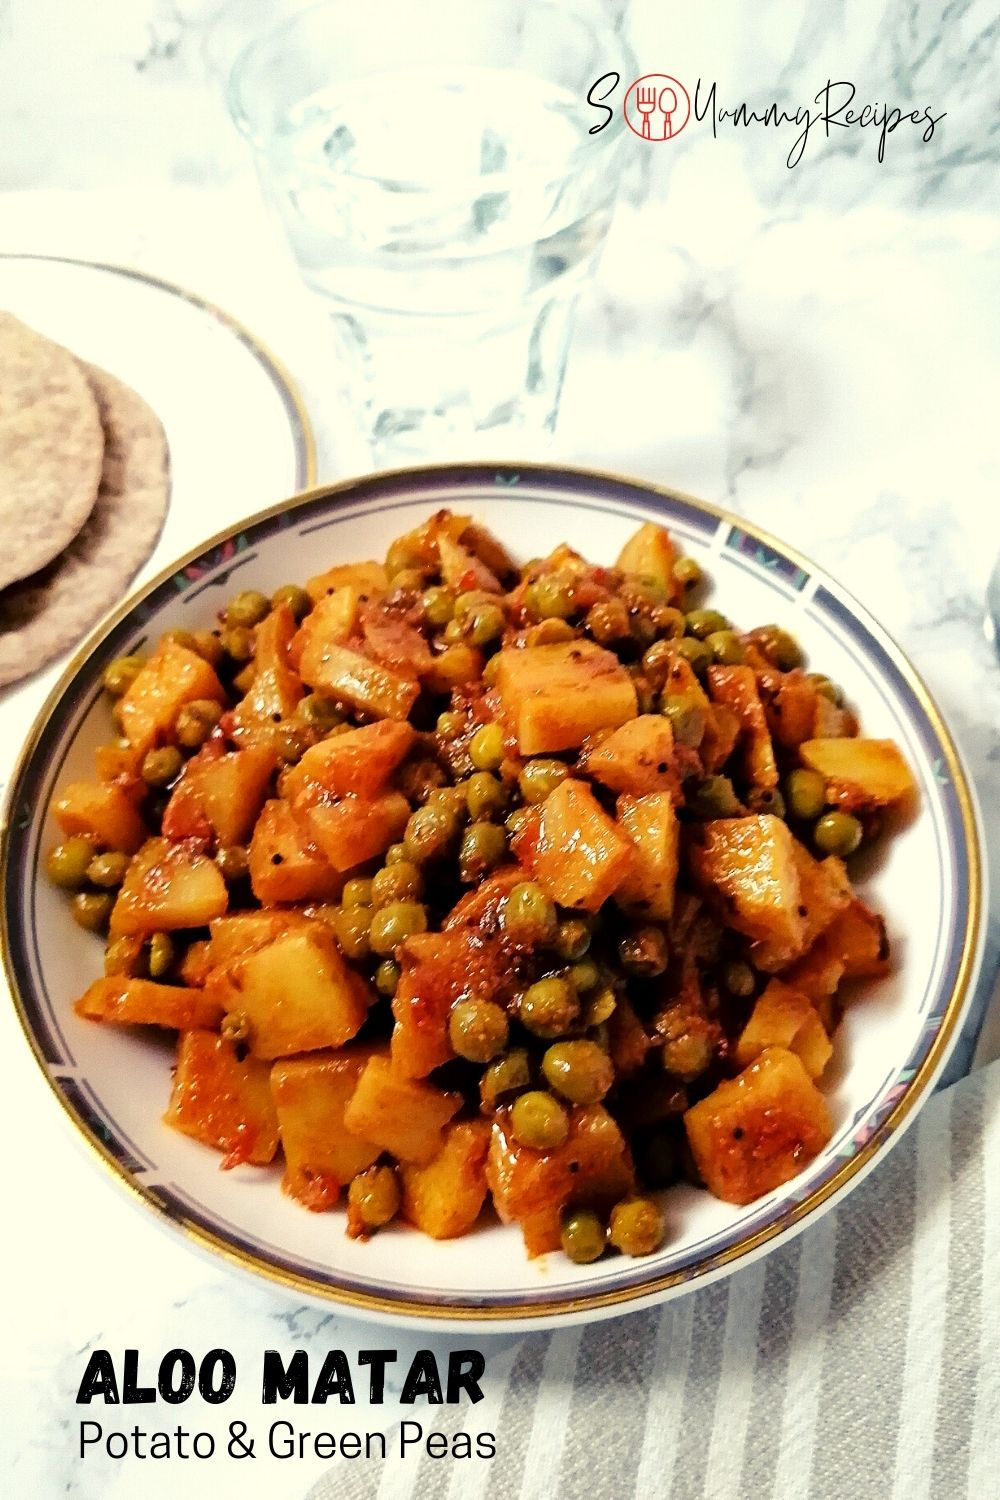 a round dish of Aloo Matar - the Pakistani potato and green peas dry curry